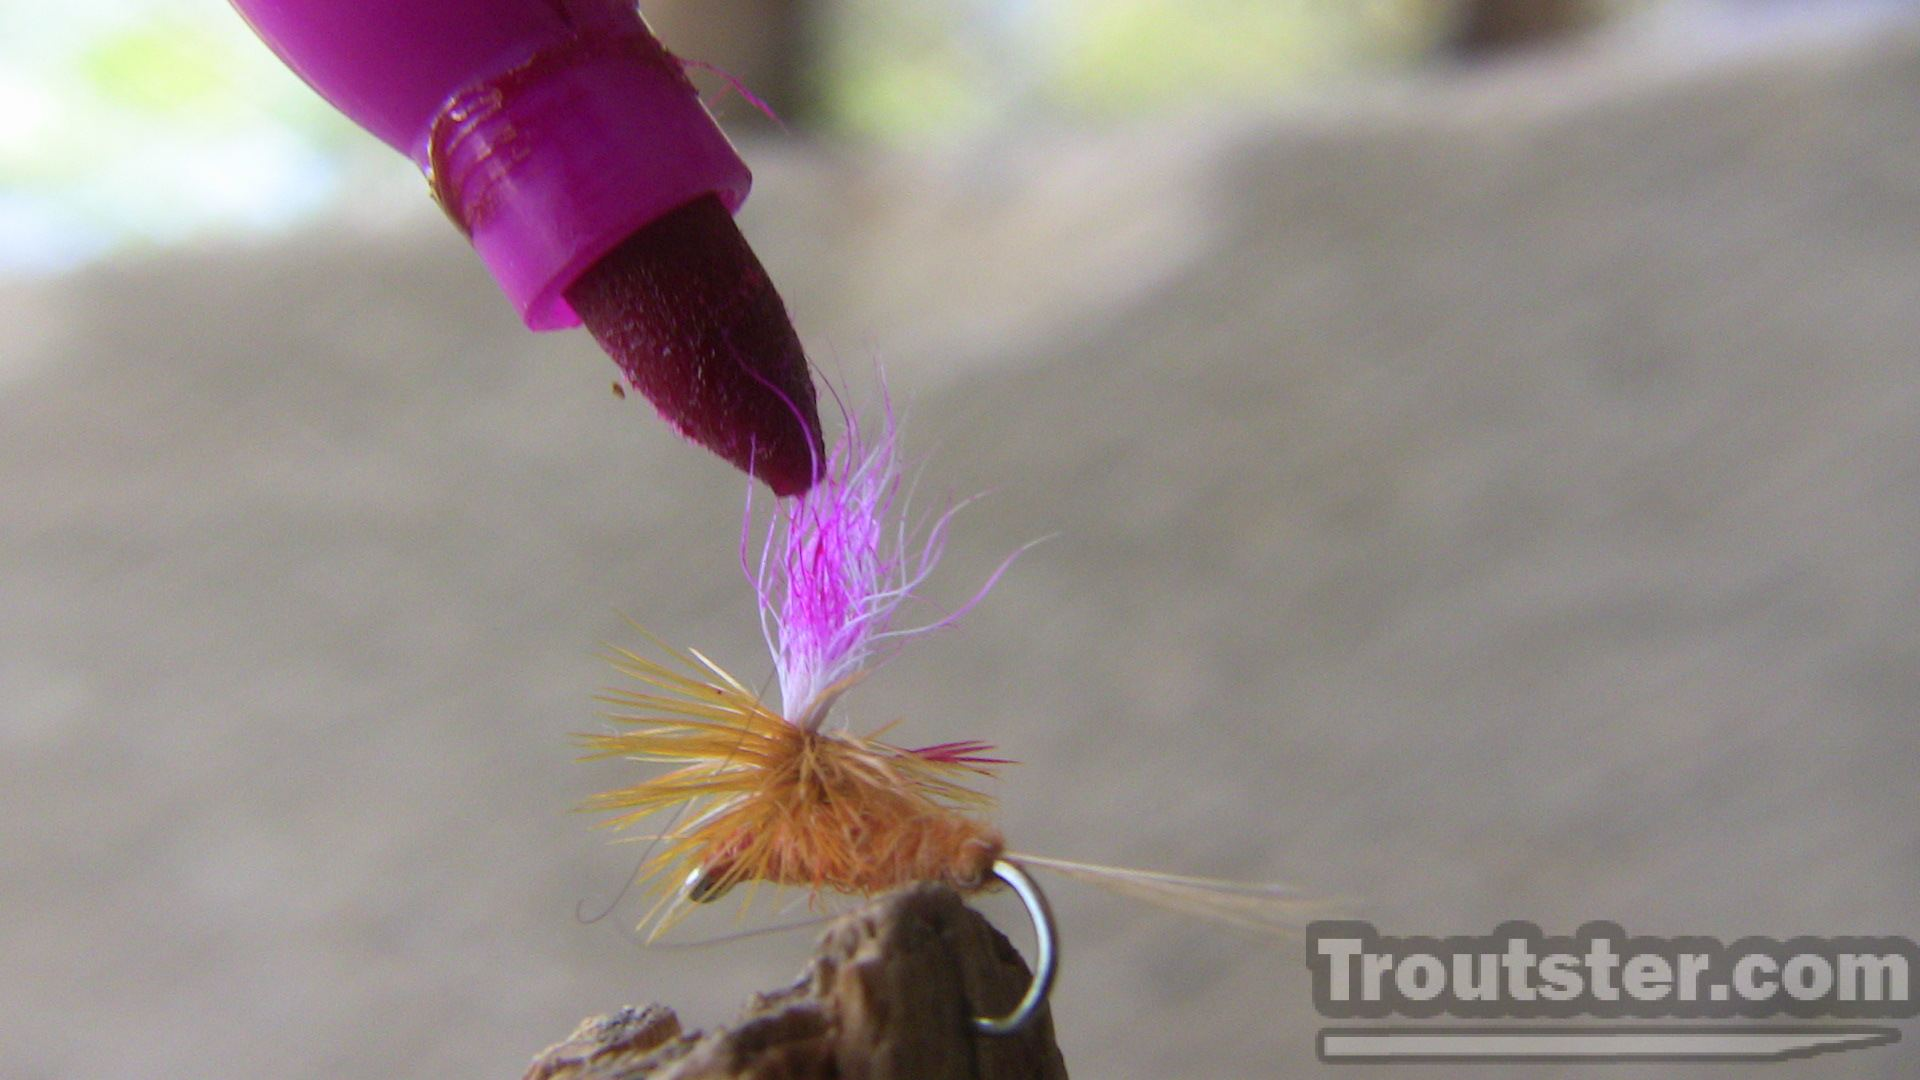 Coloring the parachute of a small dry fly can make it much more visible from a distance.